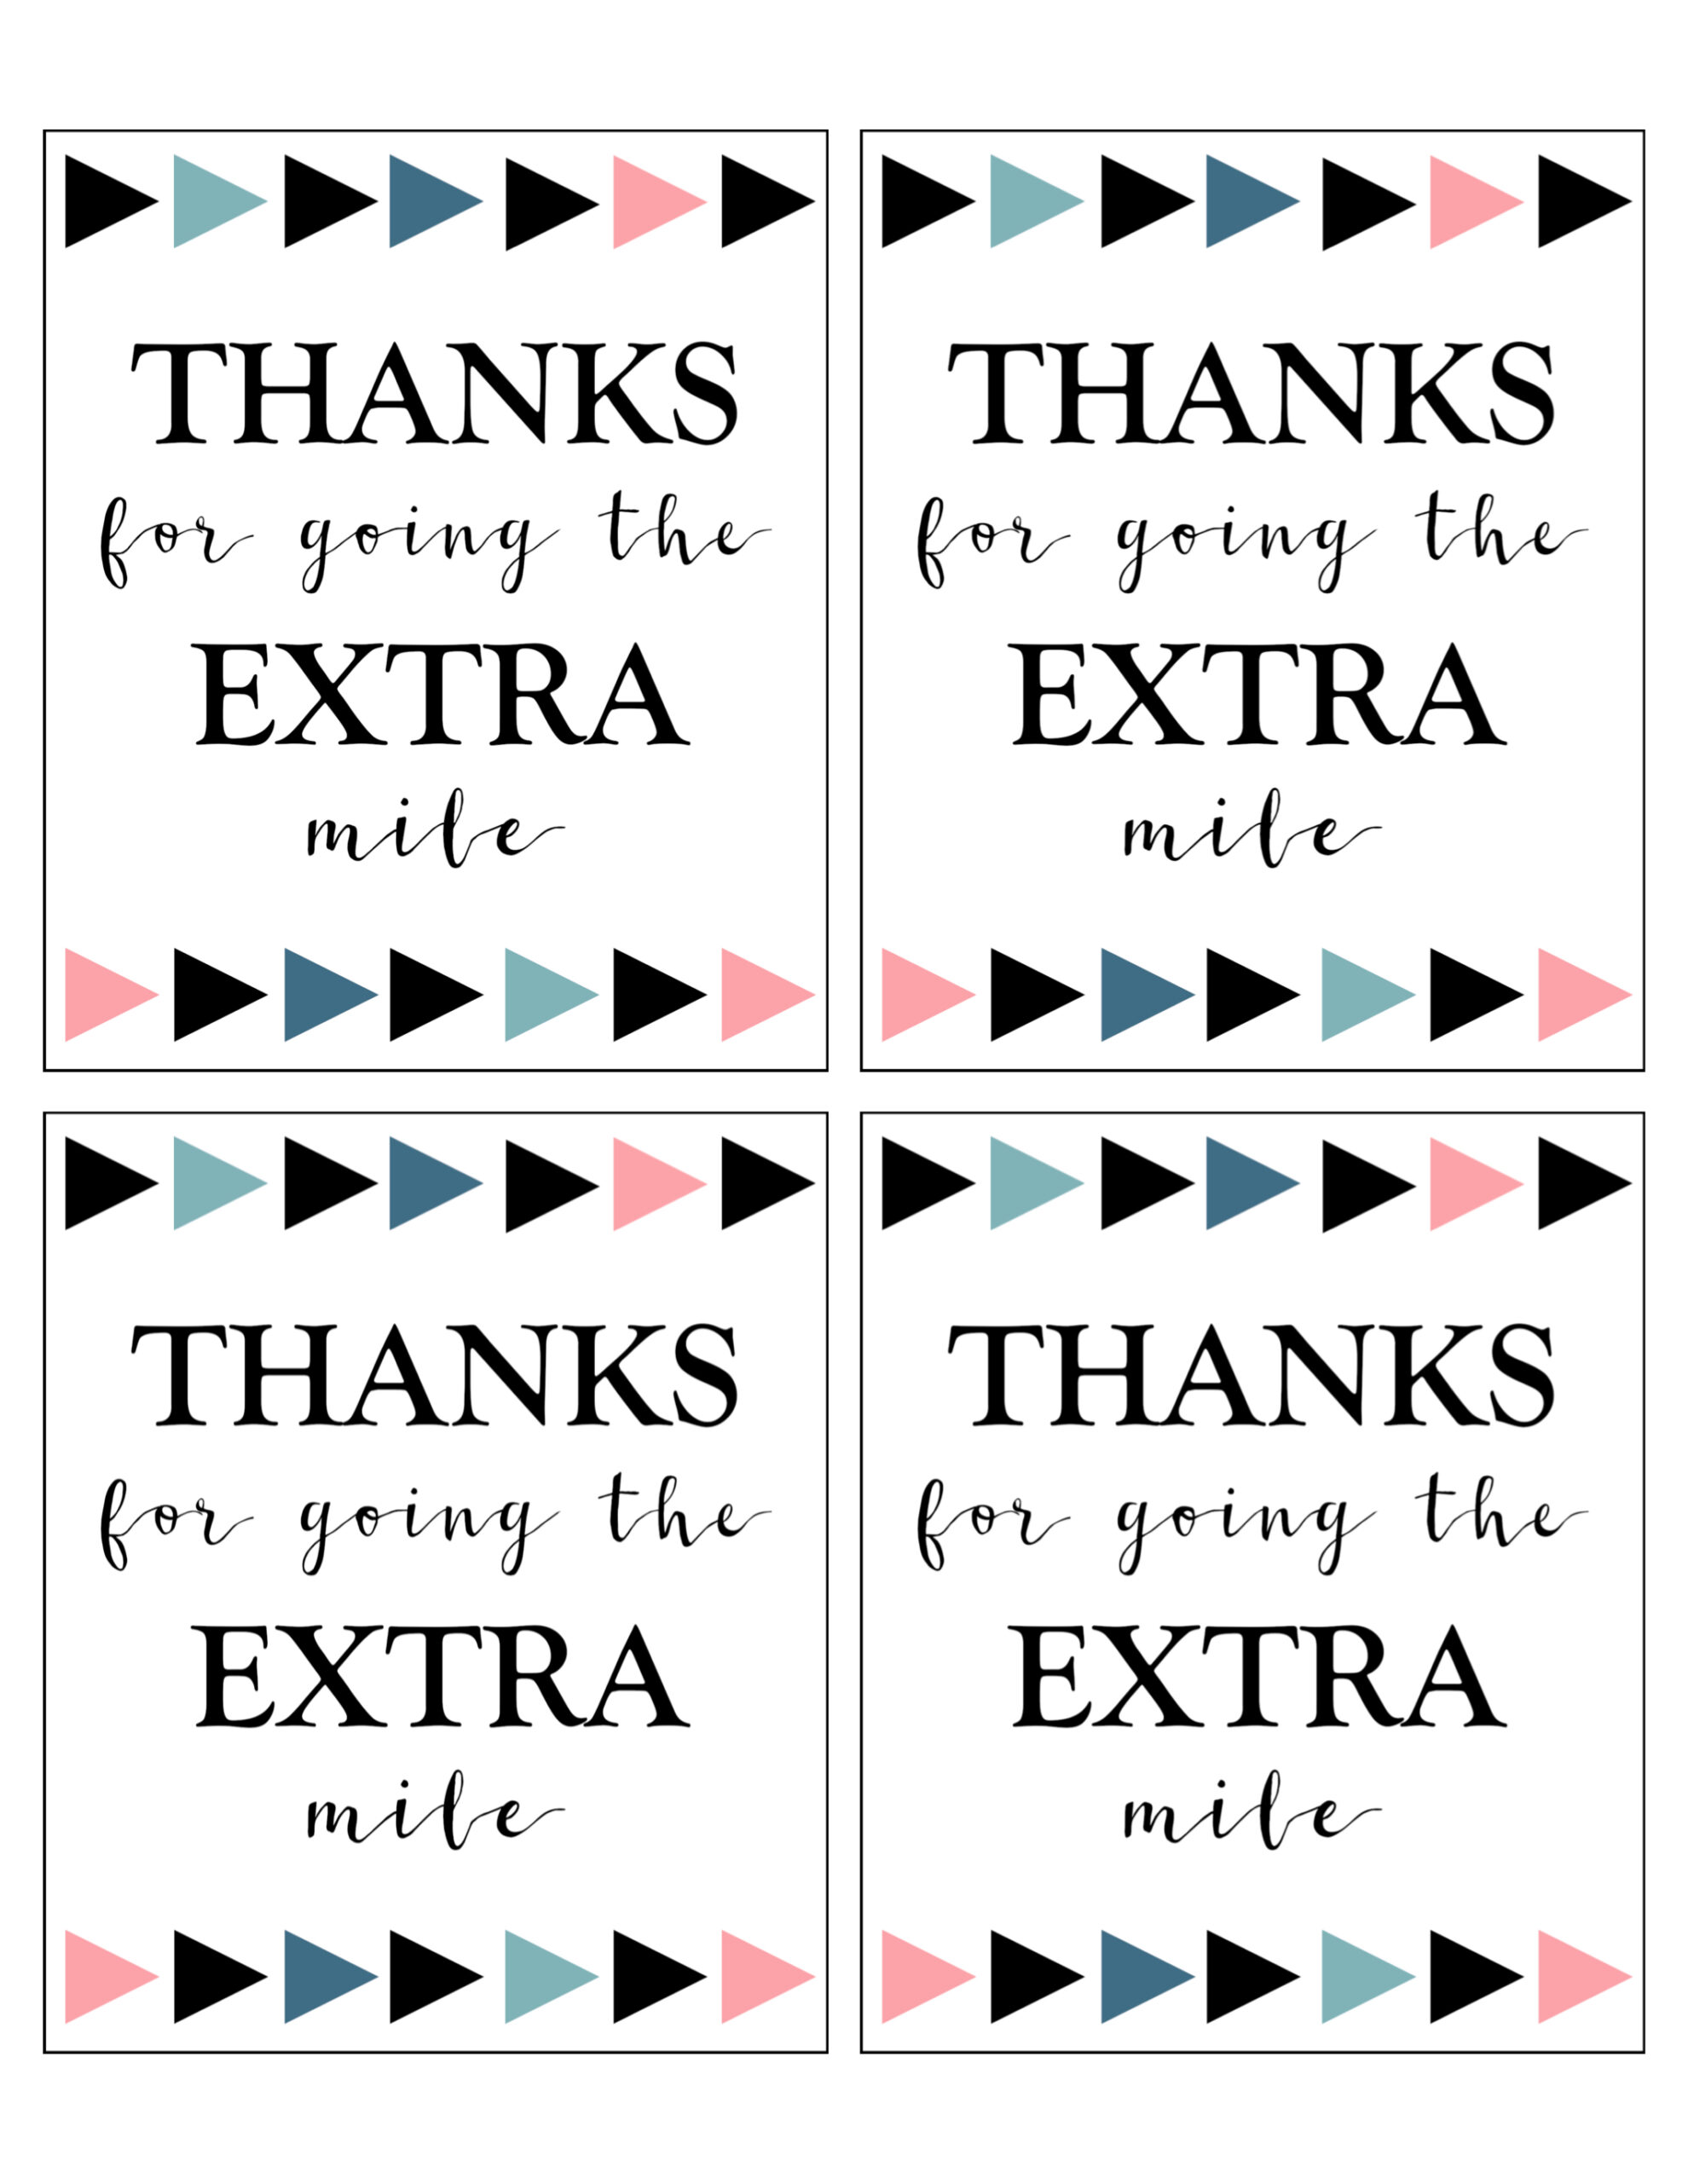 photo relating to Extra Gum Teacher Appreciation Printable identified as More Gum Thank Yourself Printable - Paper Path Style and design